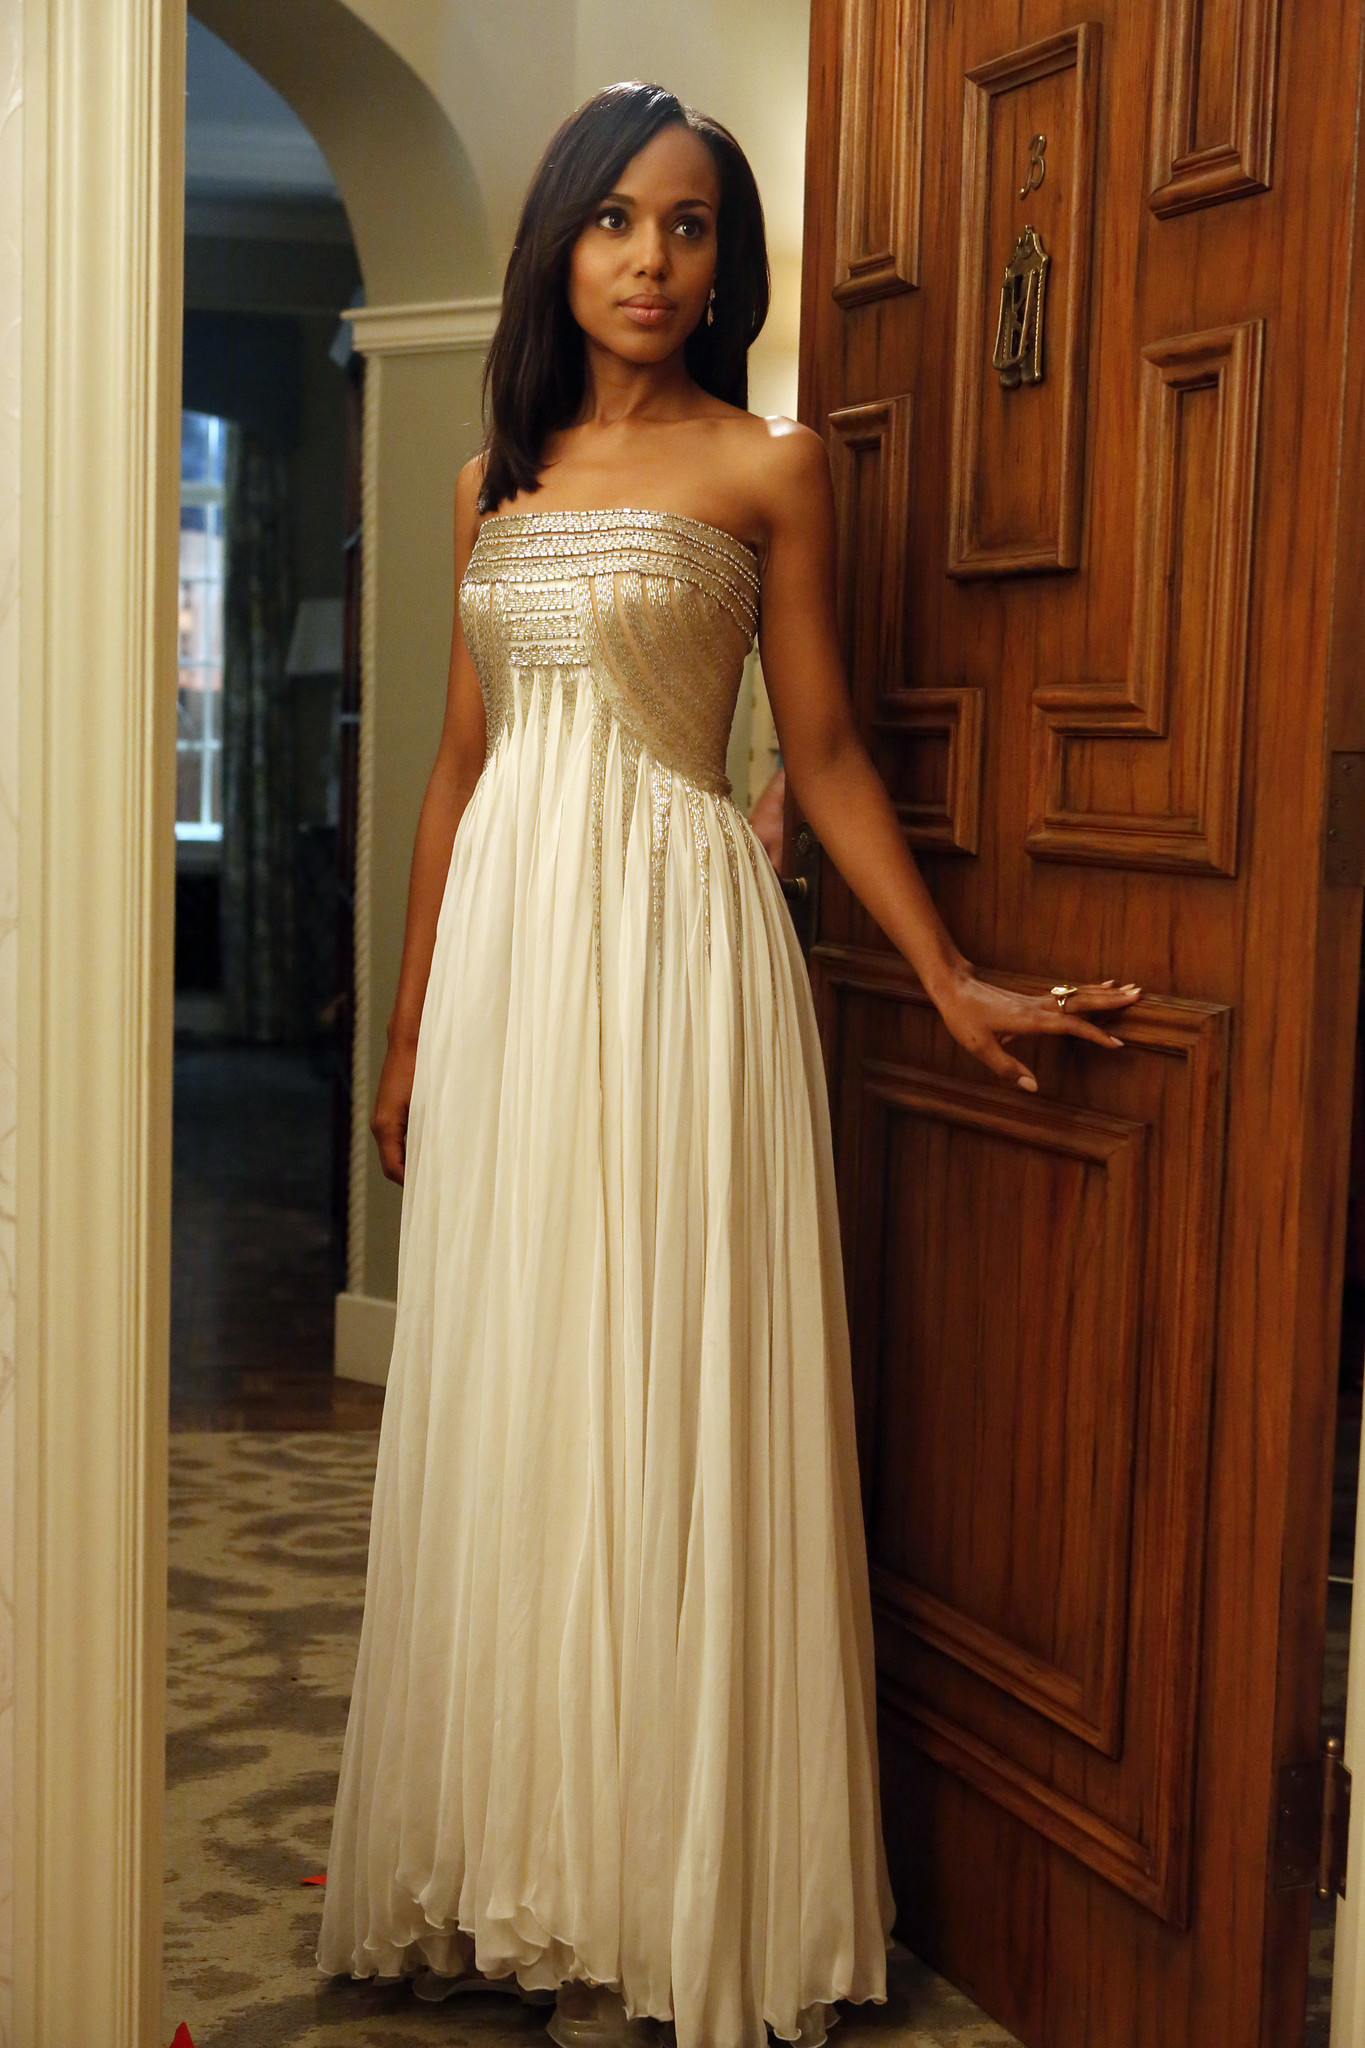 Olivia Pope wears a Jean Fares Couture gown during the 2012 episode